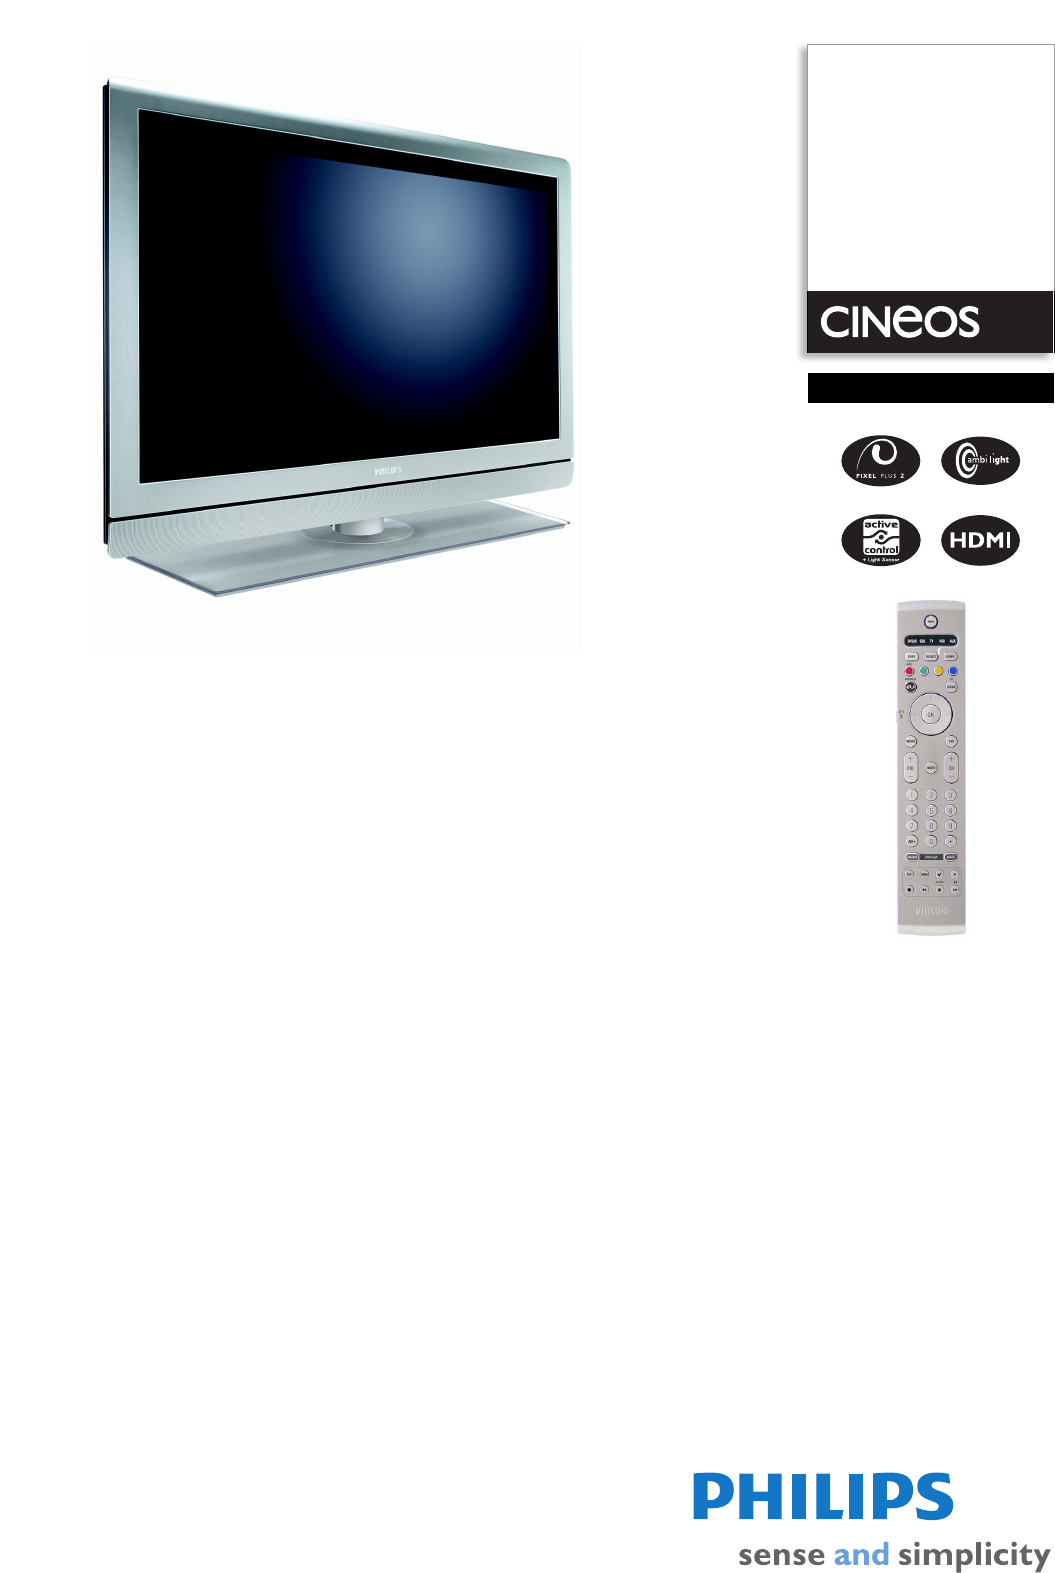 philips flat panel television 50pf9630 user guide manualsonline com rh tv manualsonline com philips cineos notice philips cineos notice